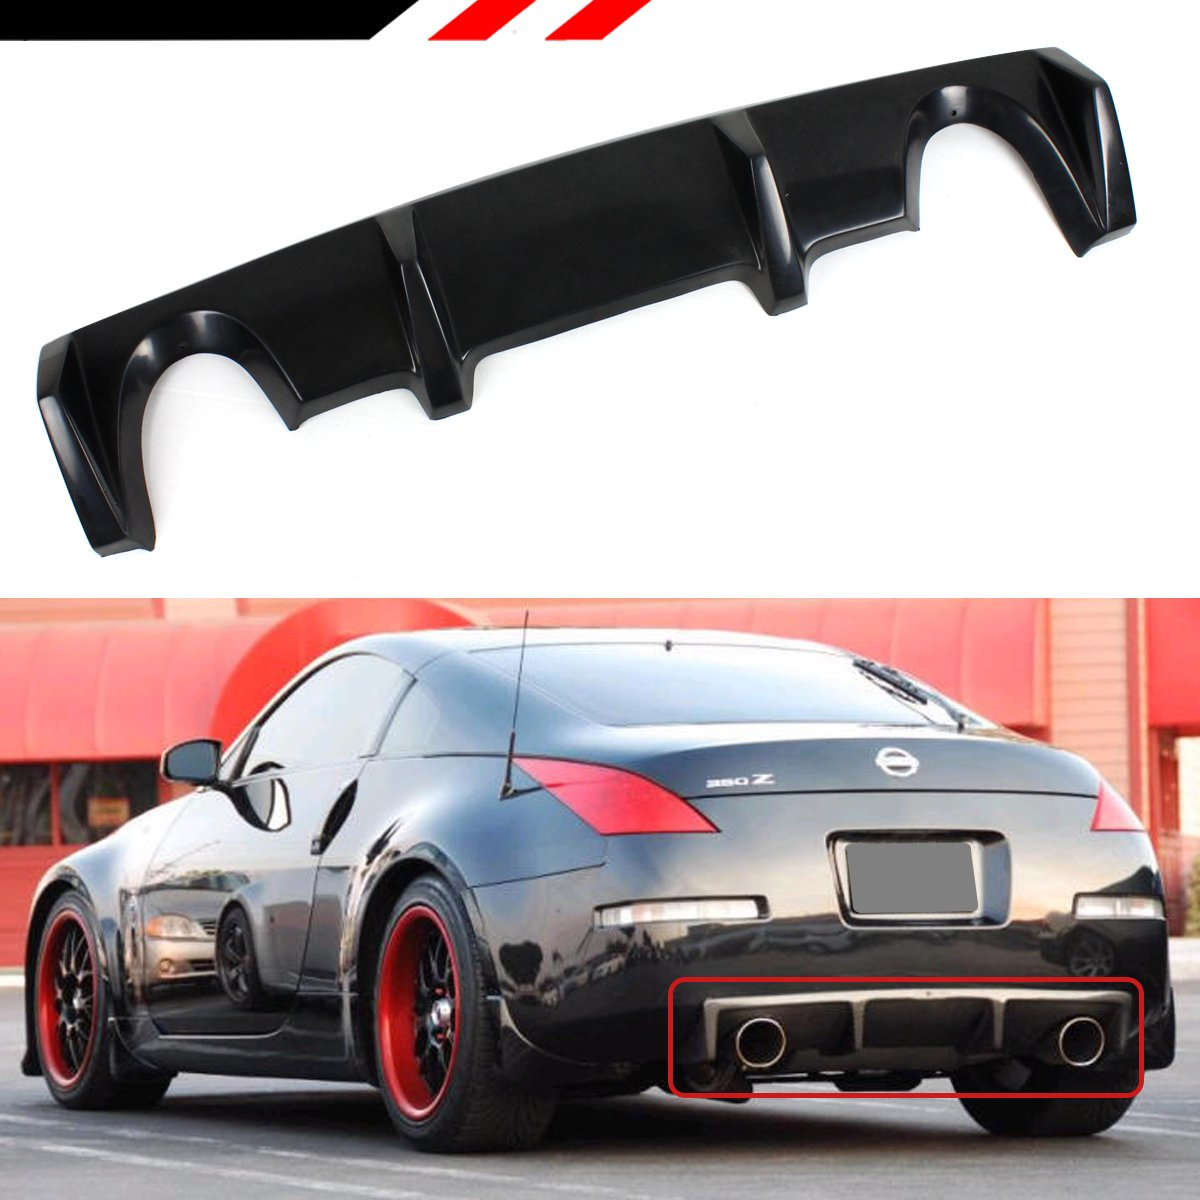 Fits for 2003-2009 Nissan 350Z Z33 Fairlady Z JDM Shark Fin Rear Bumper  Diffuser Lip